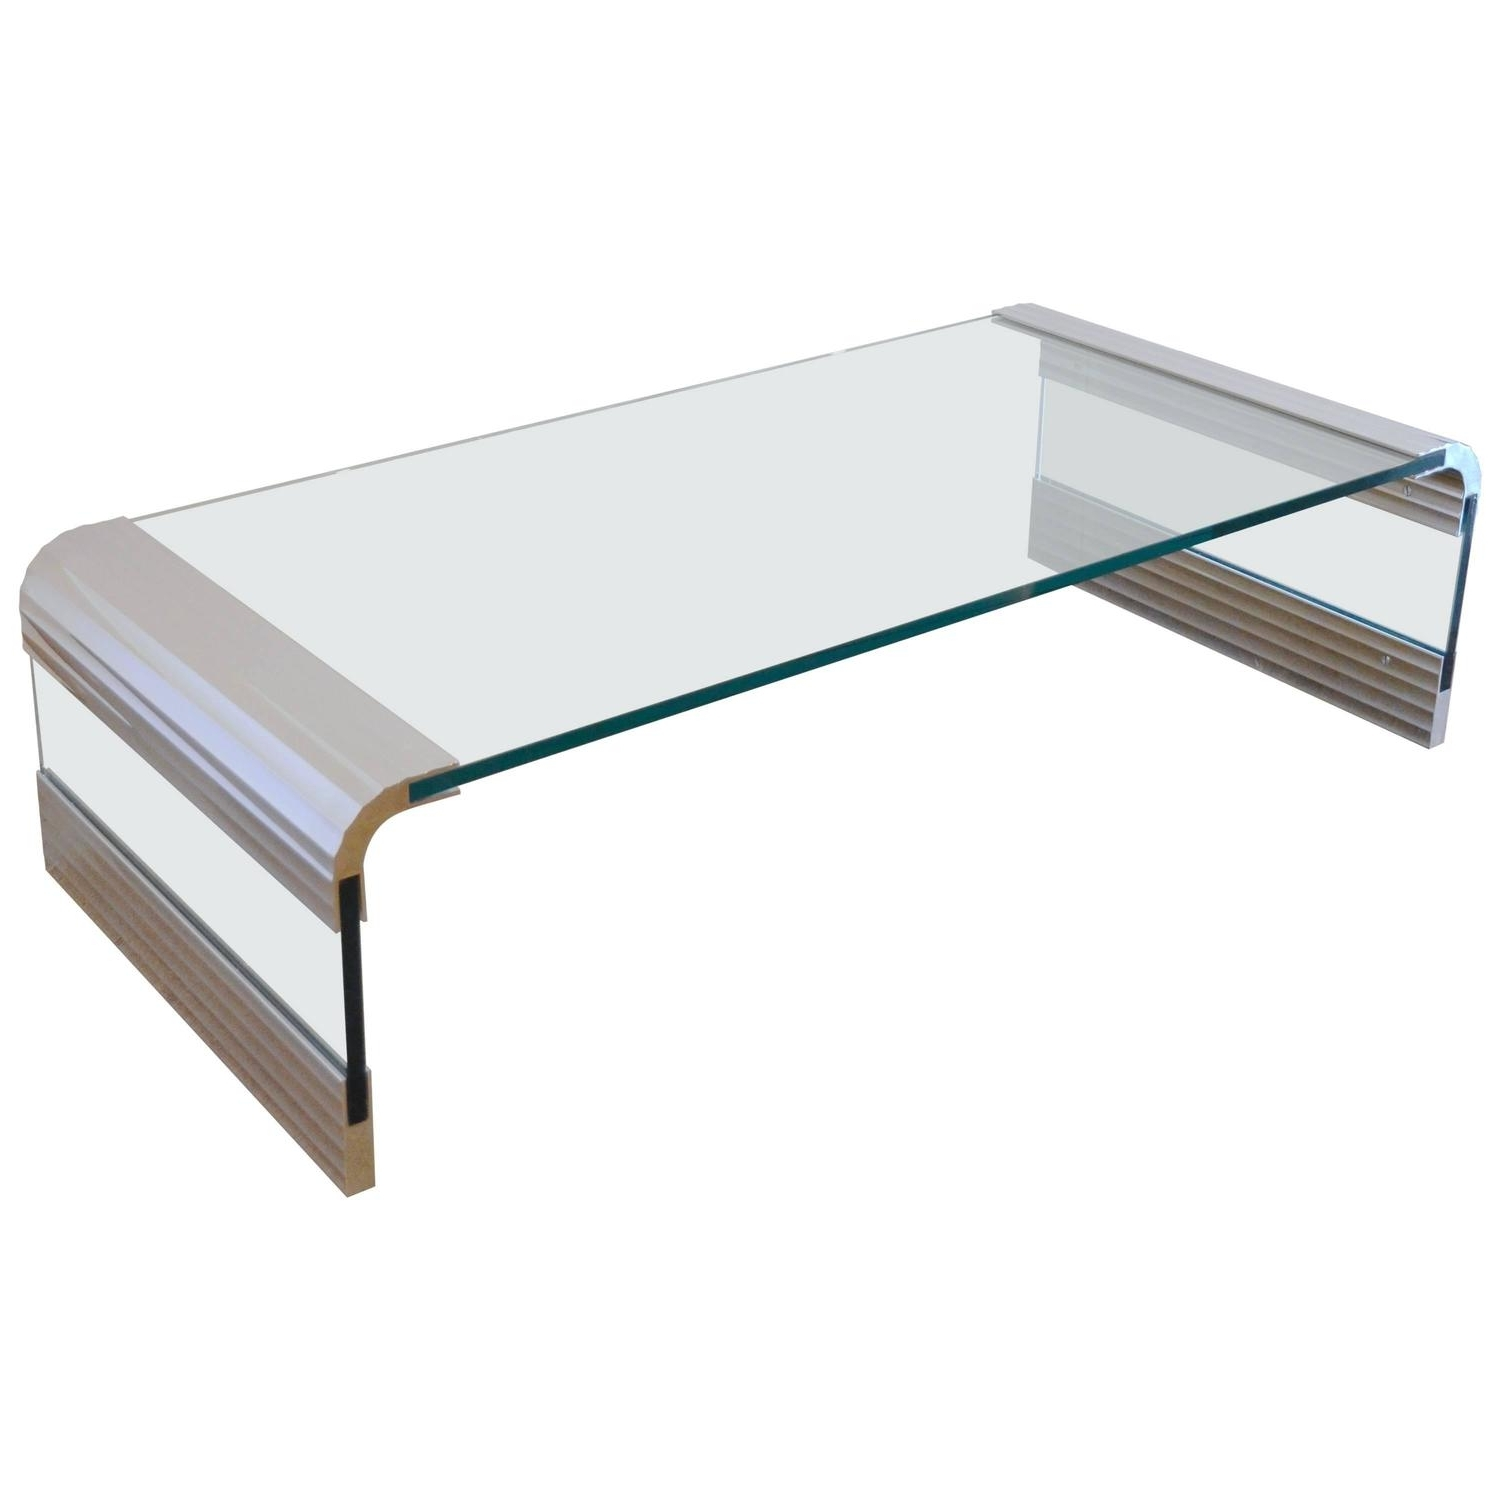 Pace Collection Coffee And Cocktail Tables – 83 For Sale At 1stdibs Throughout Best And Newest Square Waterfall Coffee Tables (View 11 of 20)